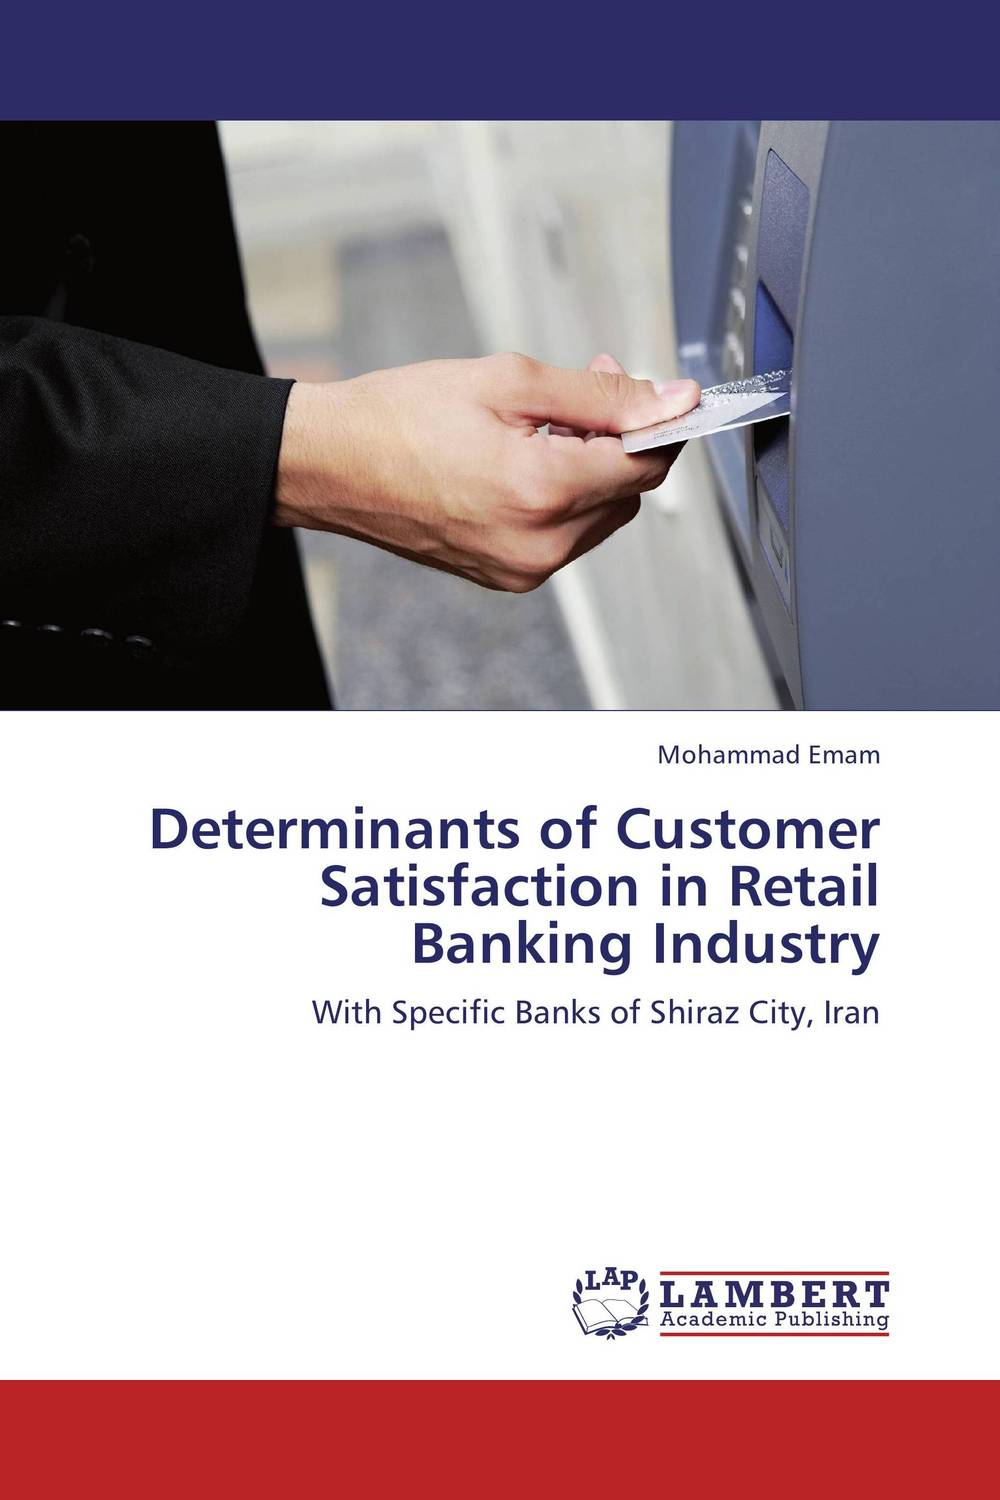 Determinants of Customer Satisfaction in Retail Banking Industry michel chevalier luxury retail management how the world s top brands provide quality product and service support